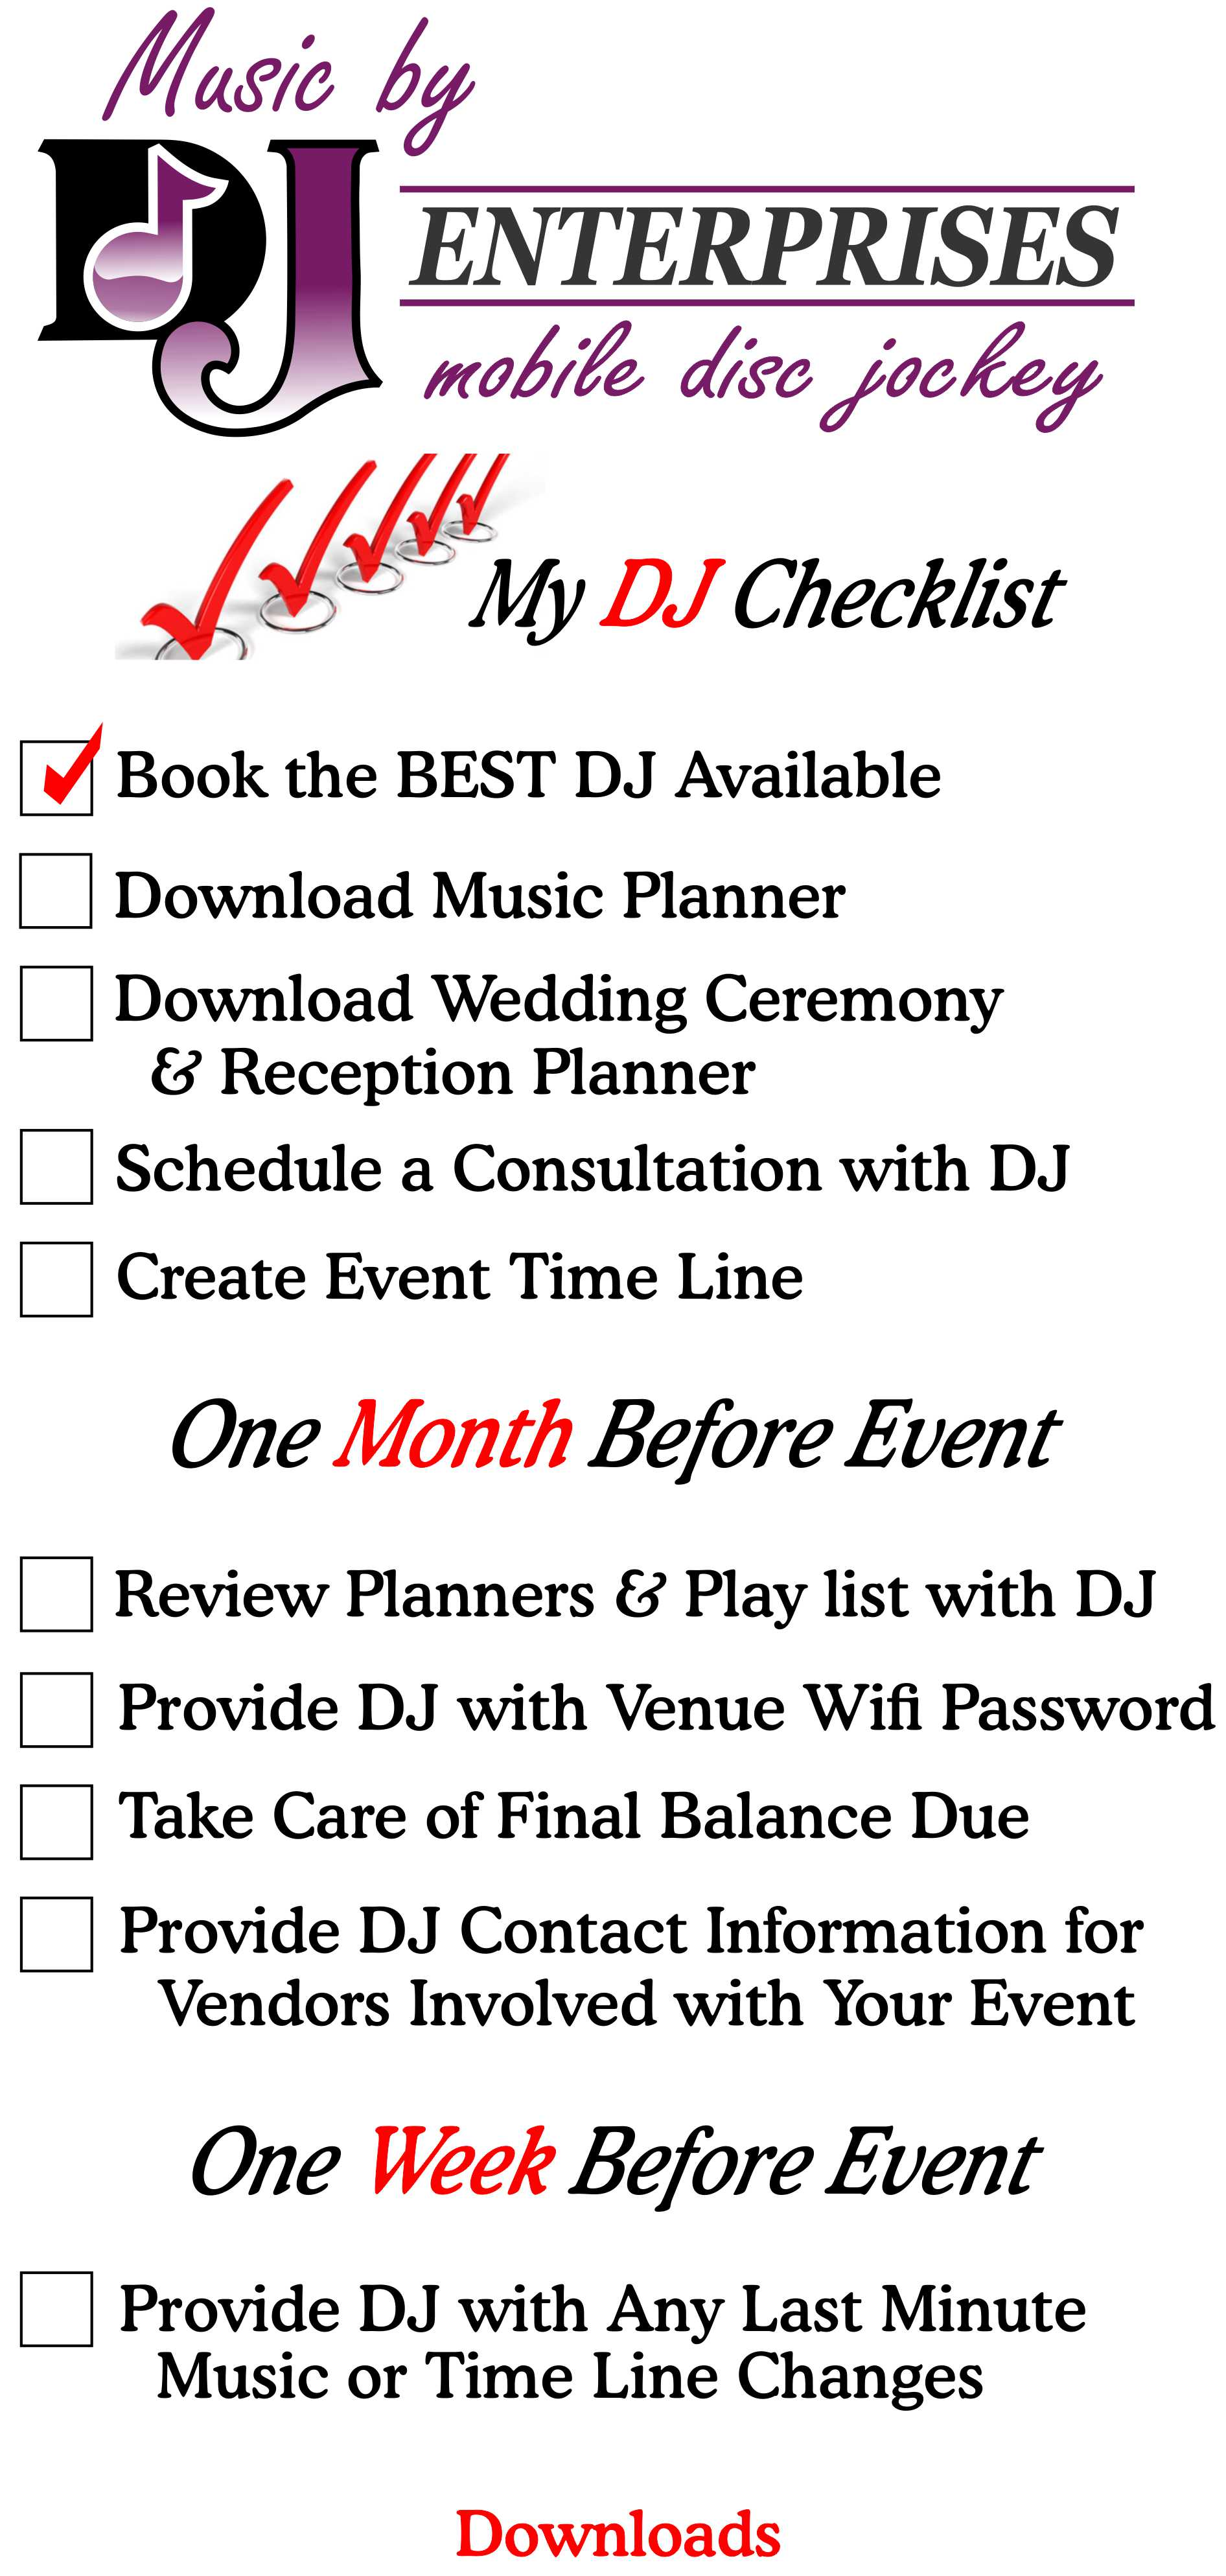 DJ Check List DJWarwick.com